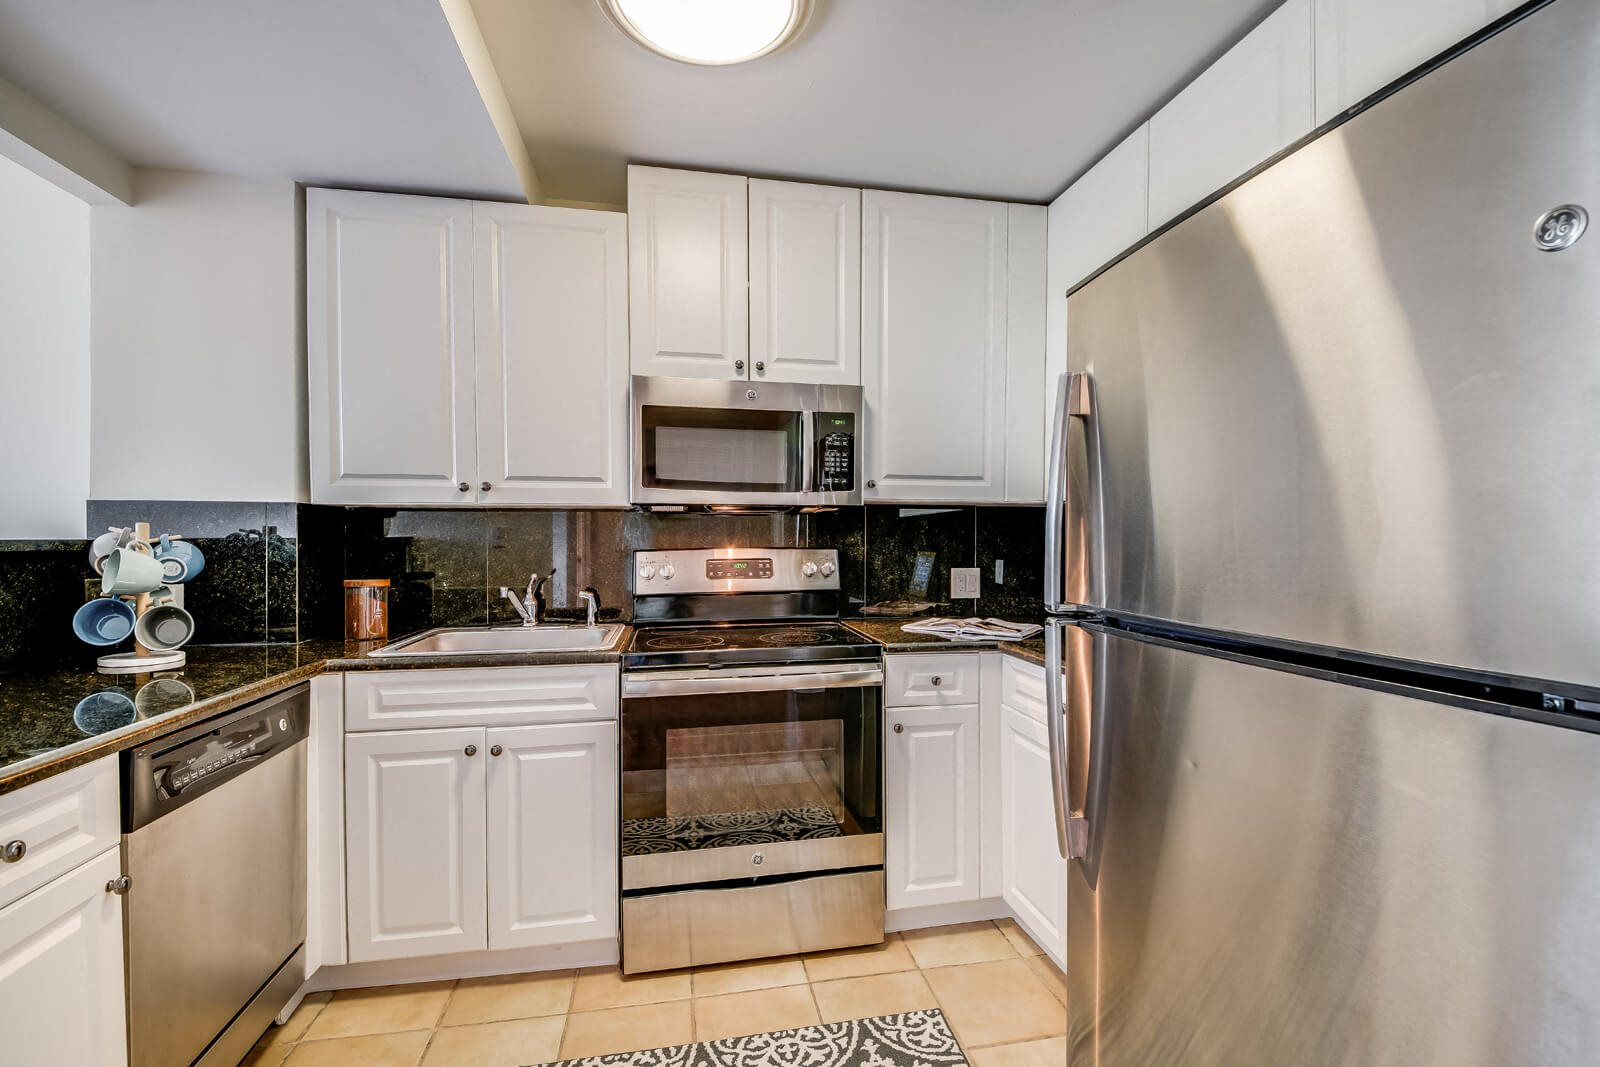 Chef-Inspired Kitchens with Granite Countertops at Windsor at Mariners, Edgewater, New Jersey